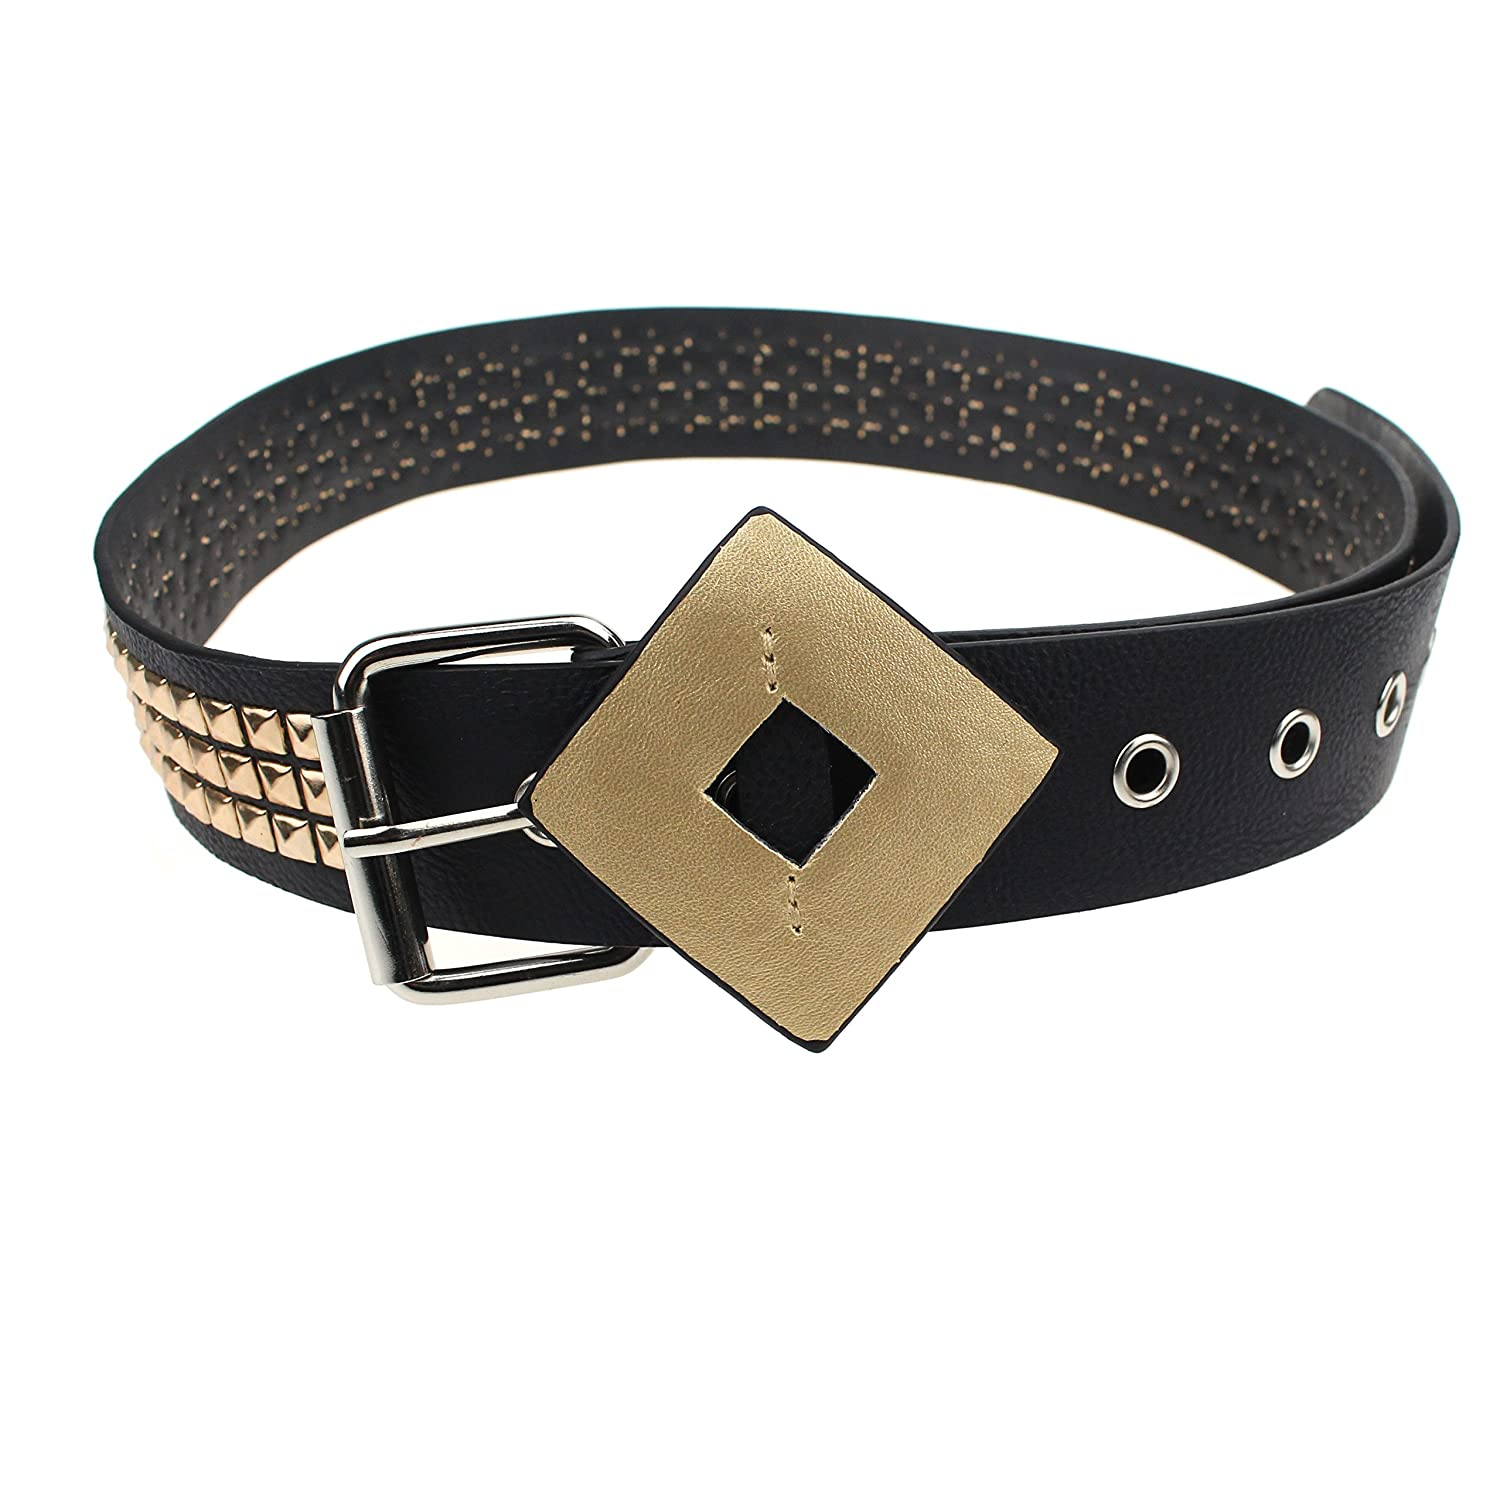 Coolcoco Gold Stud Black Leather Belt for Women Girls Kids Cosplay Accessory Outfit Prime HarleyBeltEU